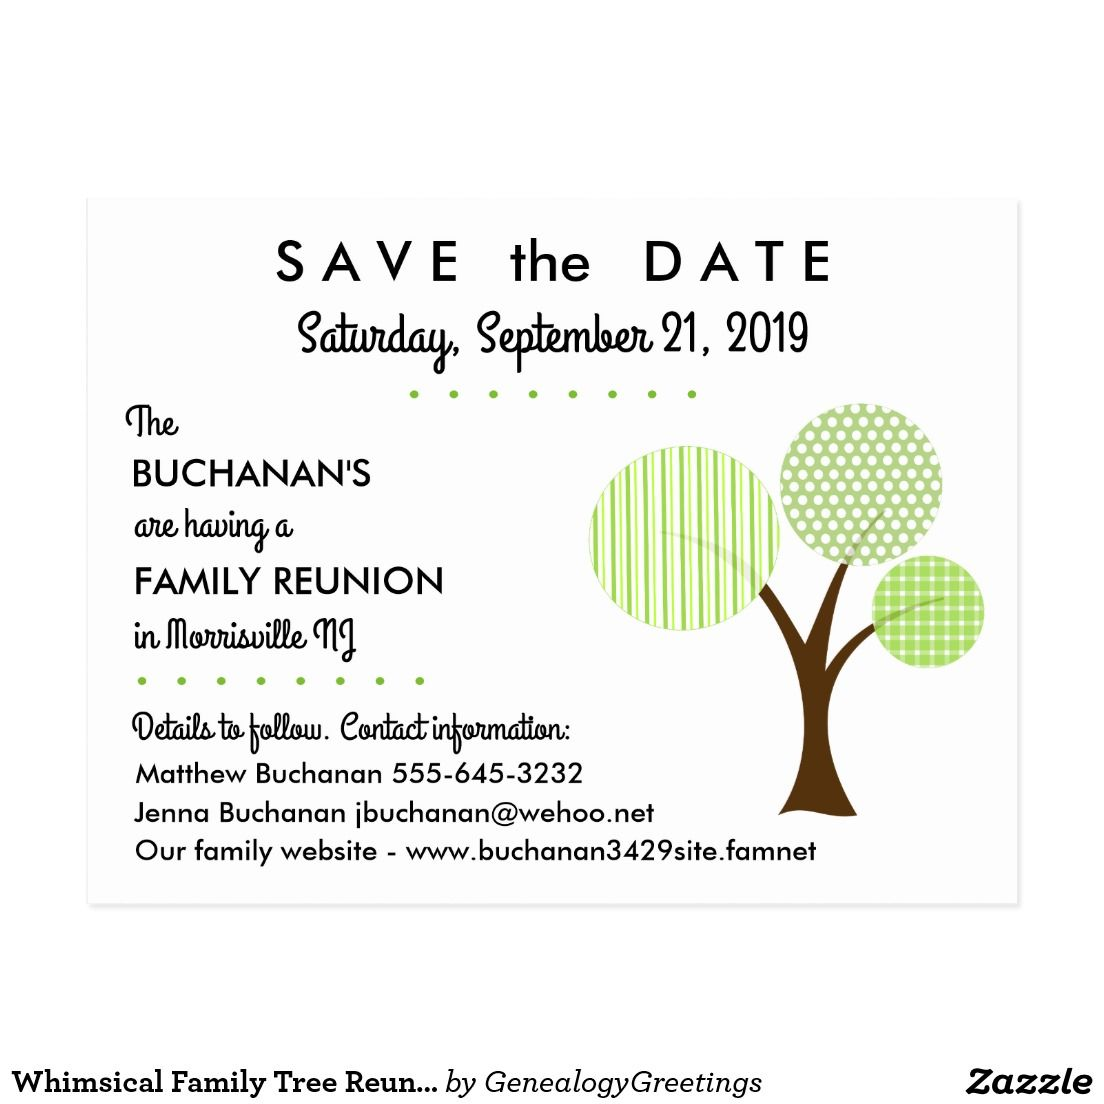 5561b57e8 Whimsical Family Tree Reunion Save the Date Postcard Our whimsical family  tree is adorned with green stripes, plaids and dots. A fun save the date  postcard ...